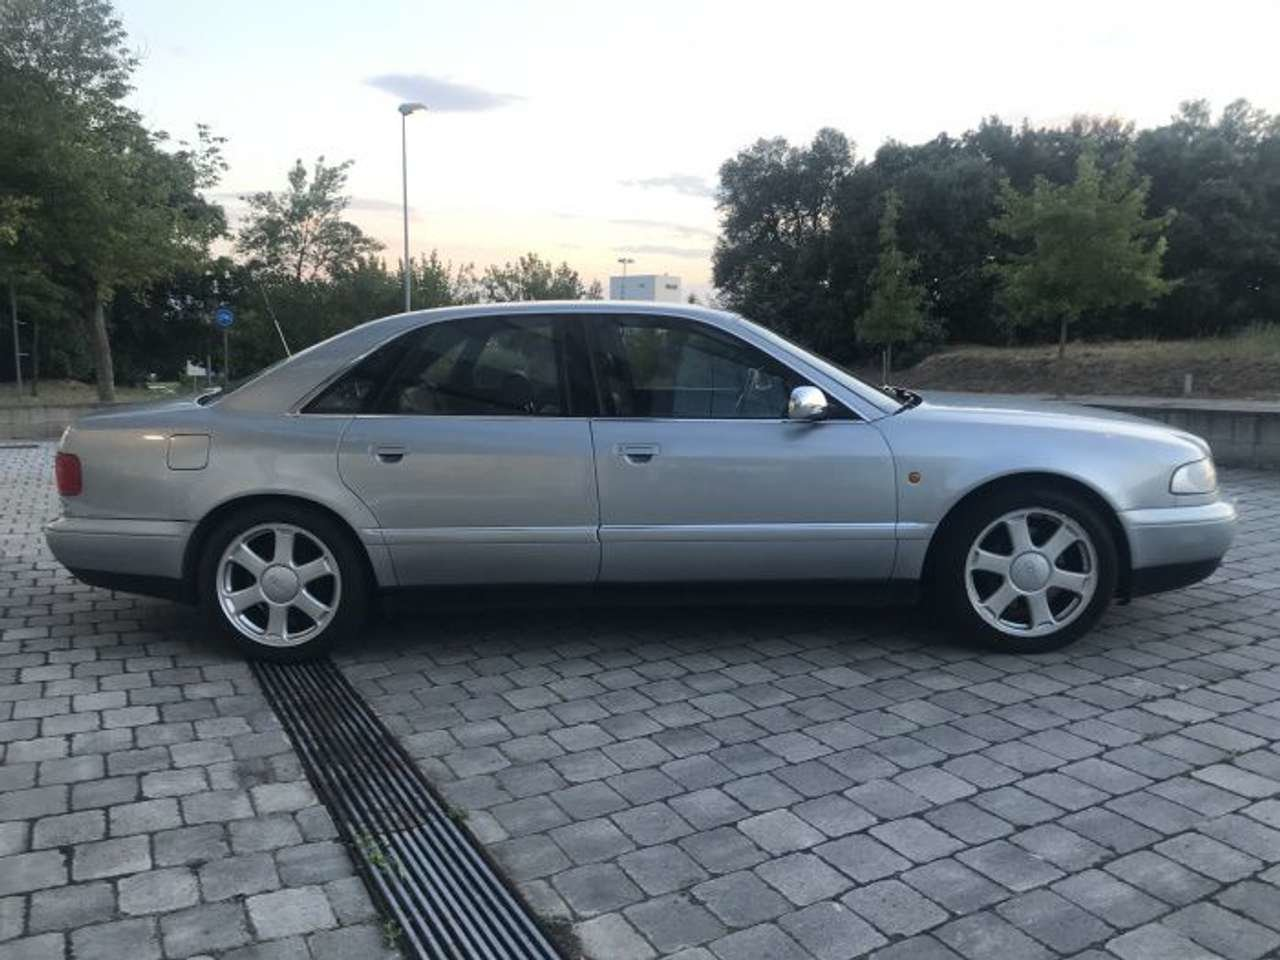 1998 Audi S8 Quattro 6 speed 4.2L-1 owner-superb LHD For Sale (picture 2 of 6)